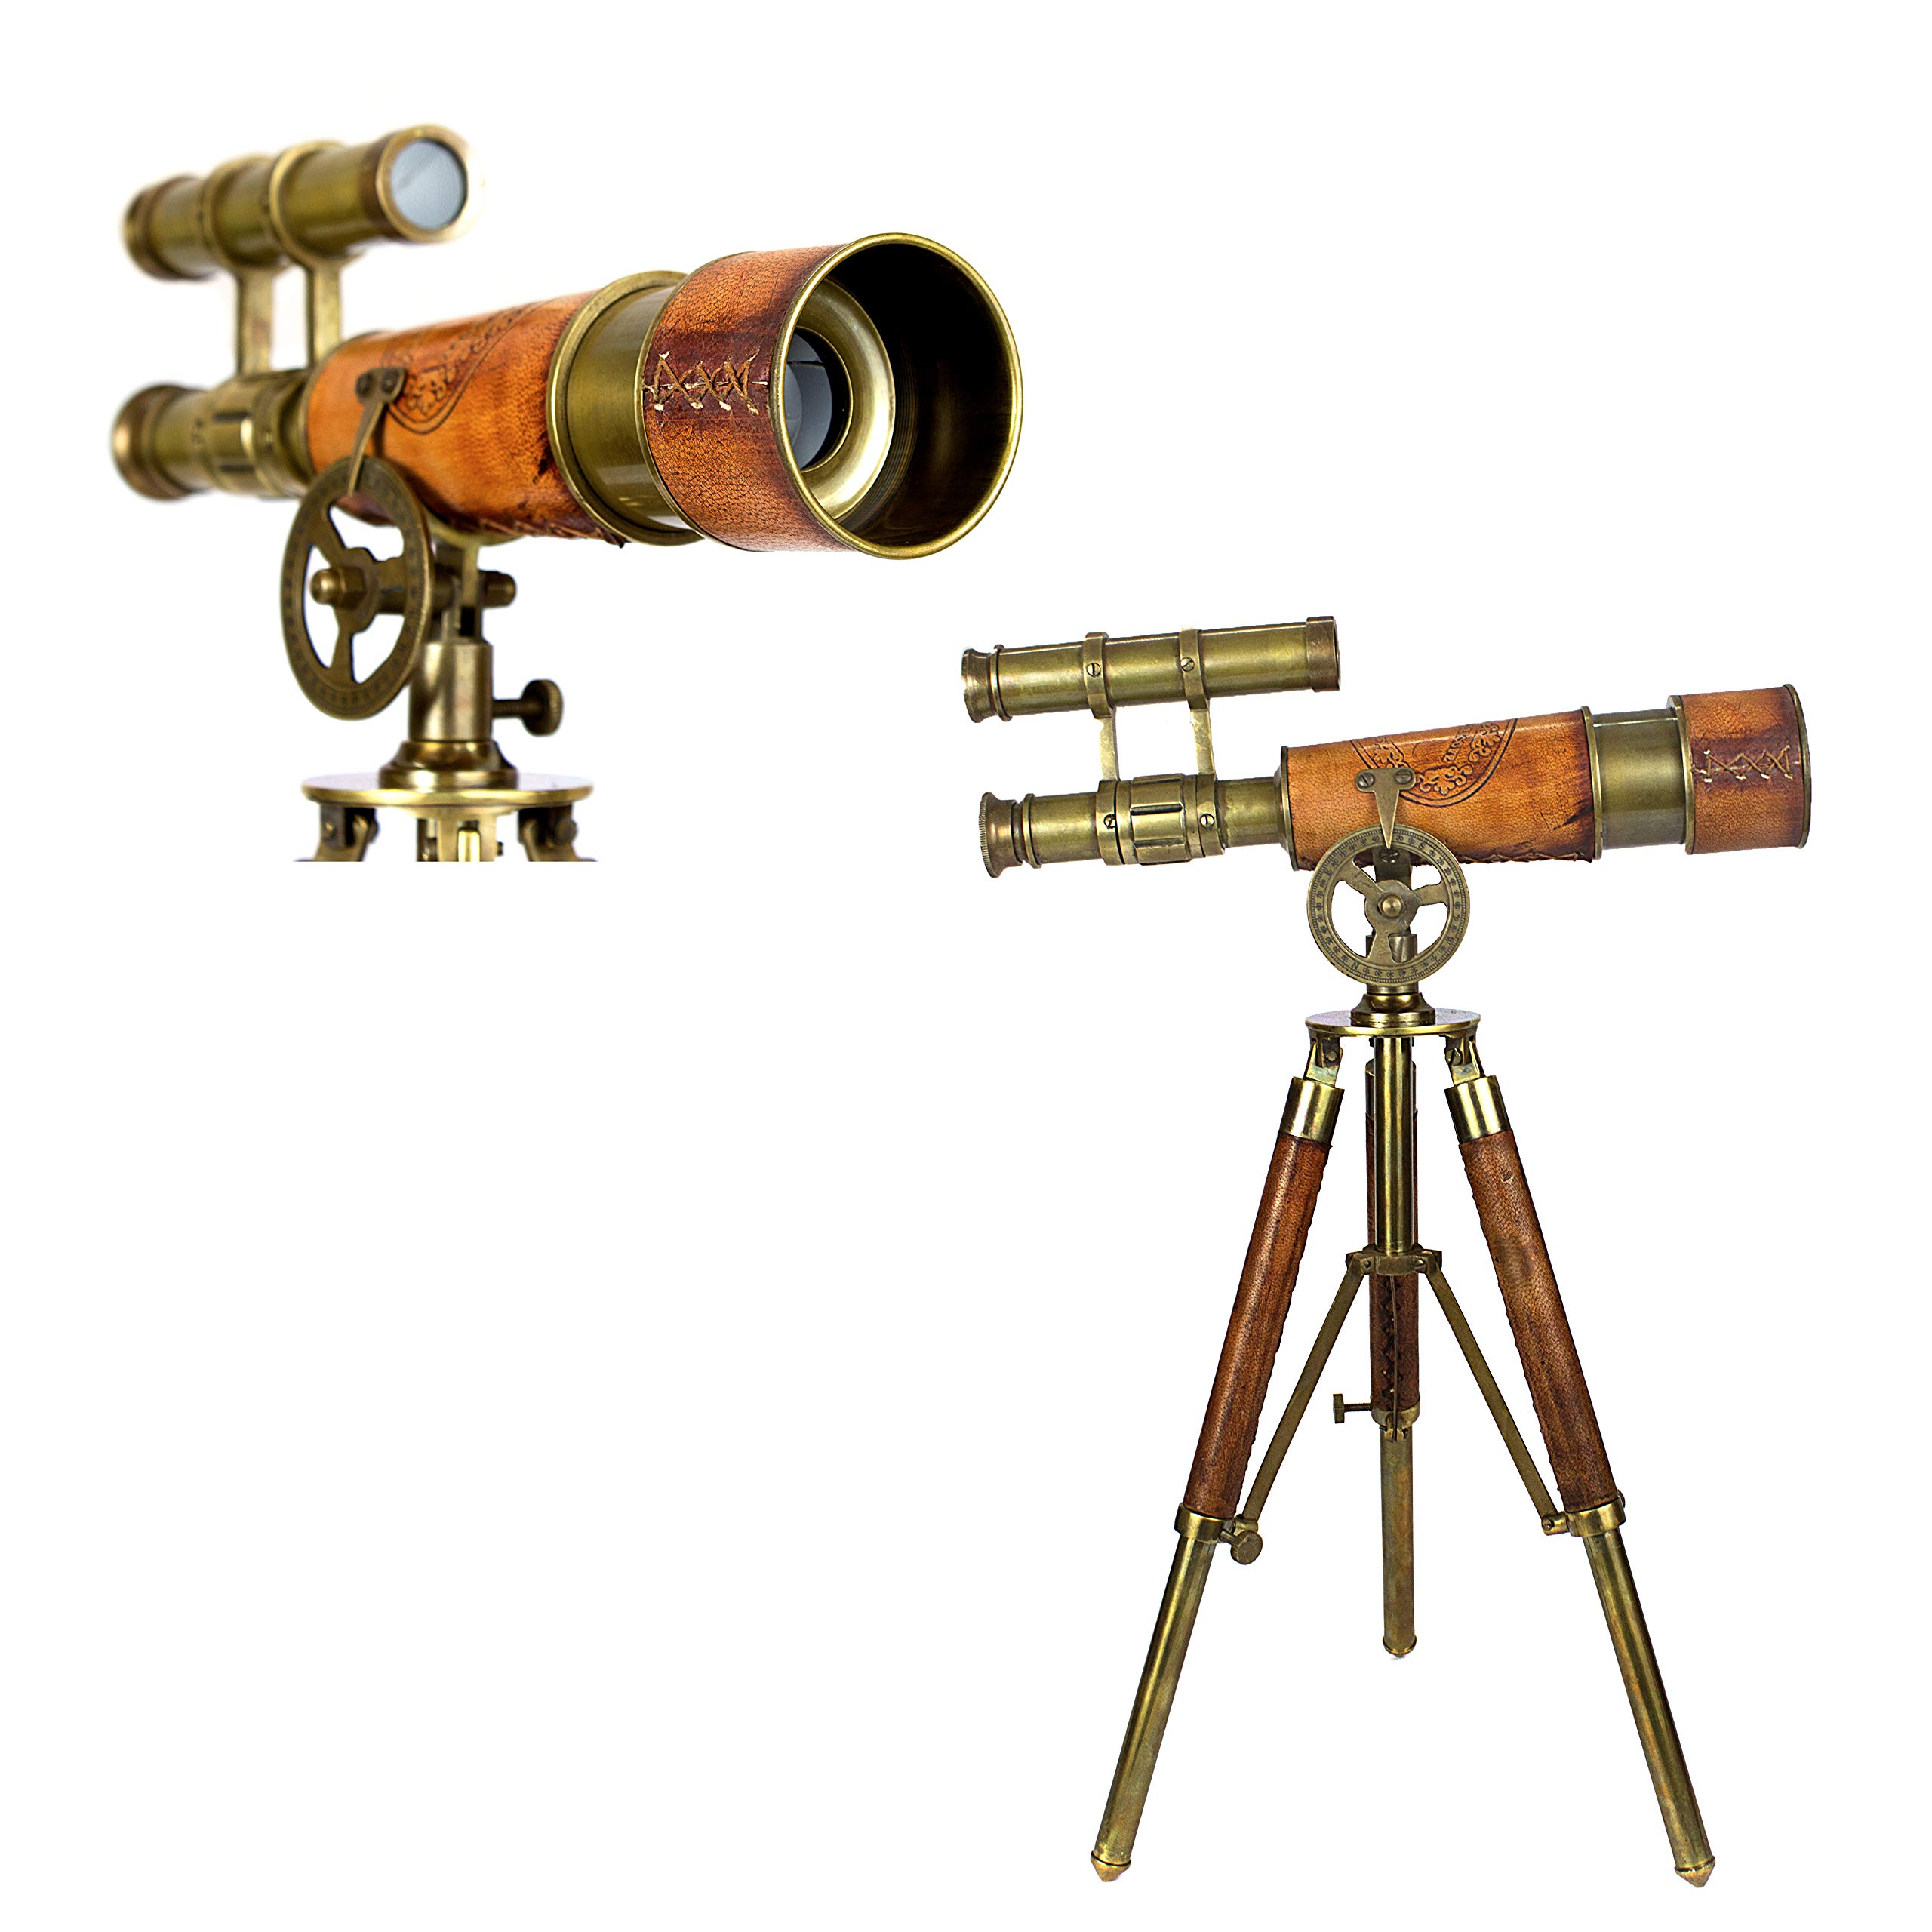 A Table Décor Telescope Vintage Marine Gift Functional Instrument Collectibles Gift Item (Brass Antique + Leather) by Collectibles Buy